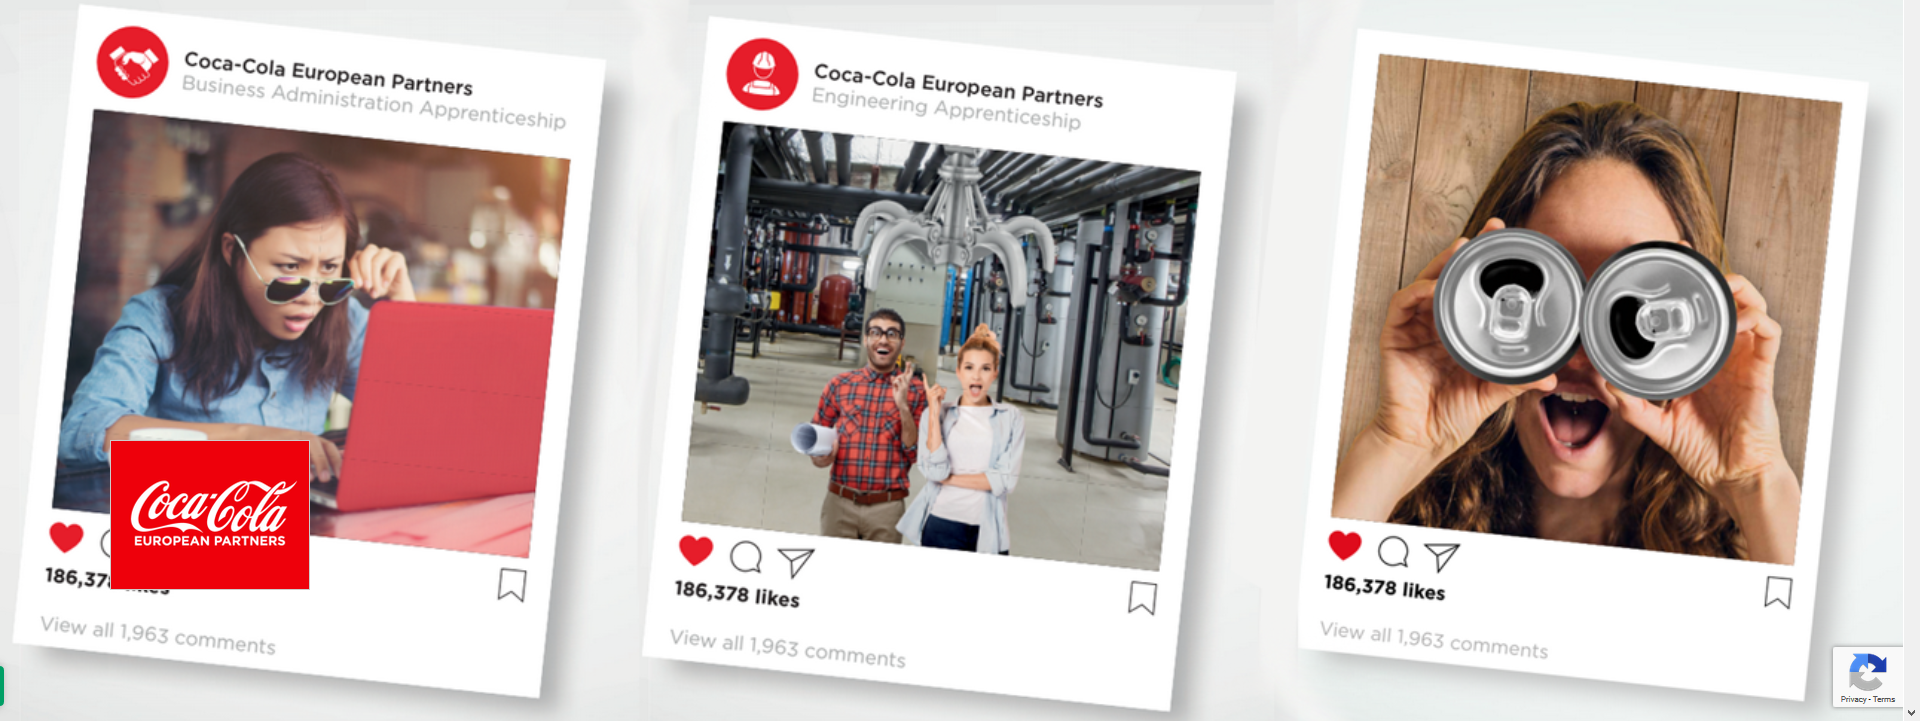 Coca-Cola European Partners Careers